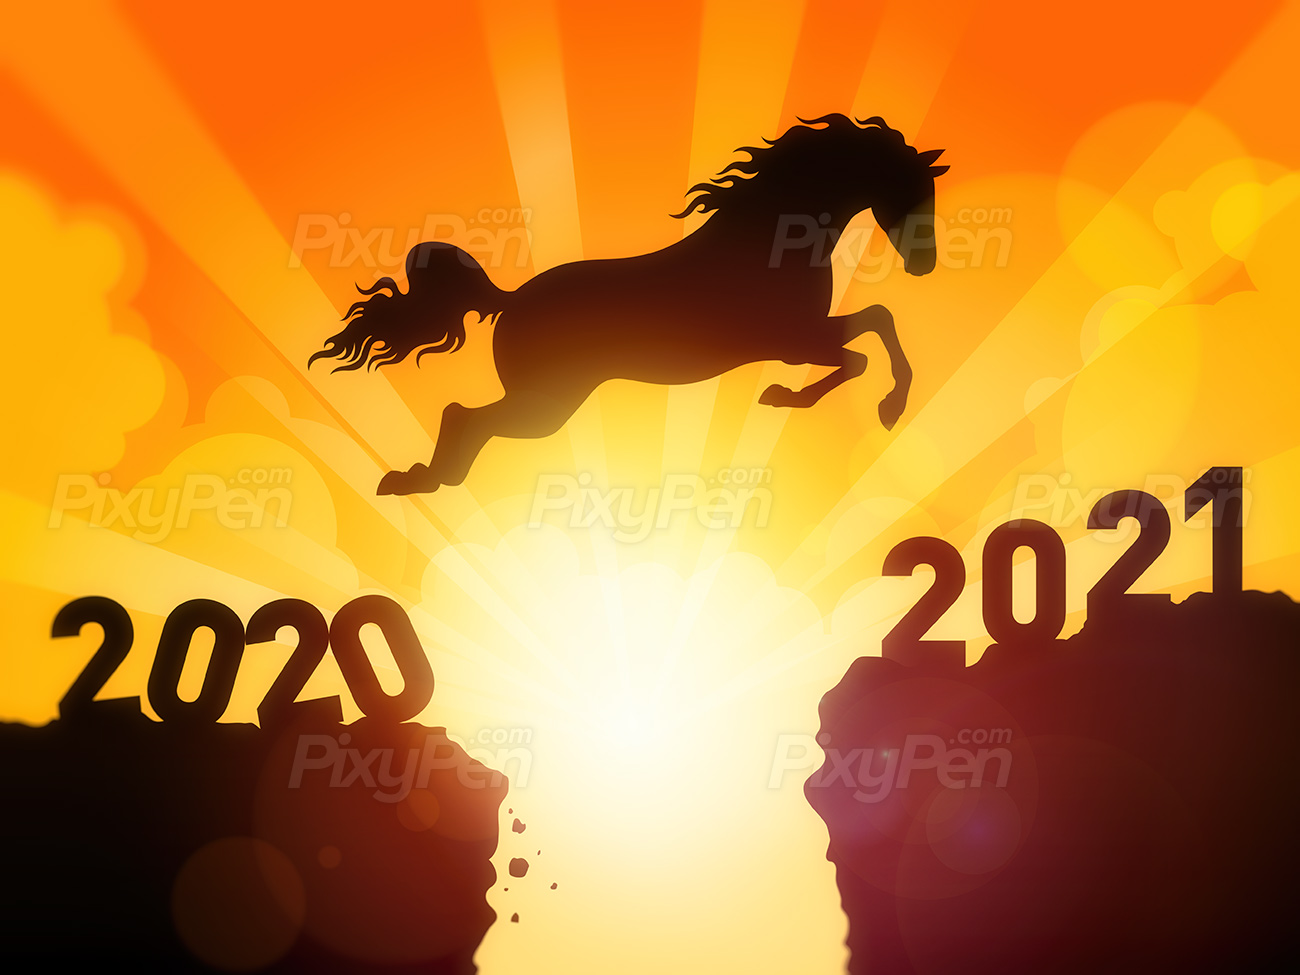 Horse jumping to New Year 2021   Wallpaper and Background PixyPen 1300x975